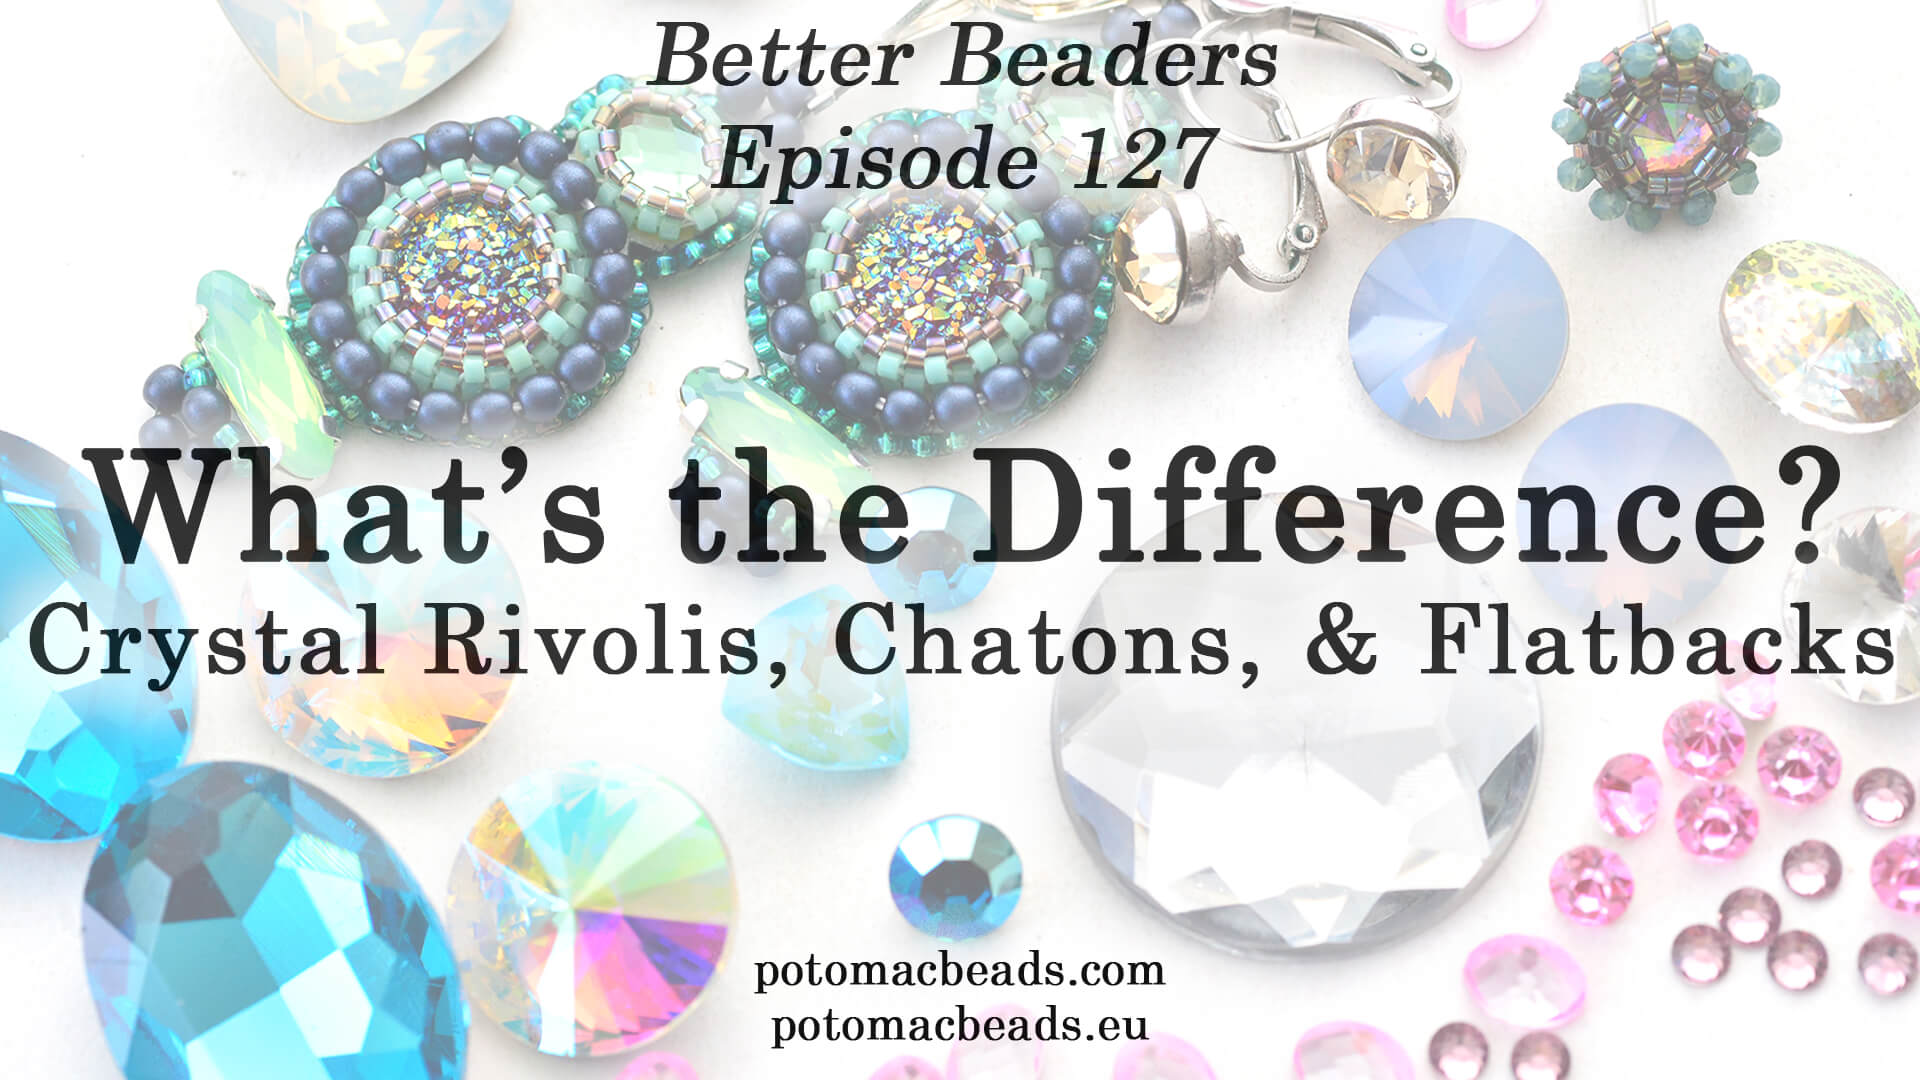 How to Bead / Better Beader Episodes / Better Beader Episode 127 - What is the Difference Between Rivoli, Chaton, & Flatback Crystals?